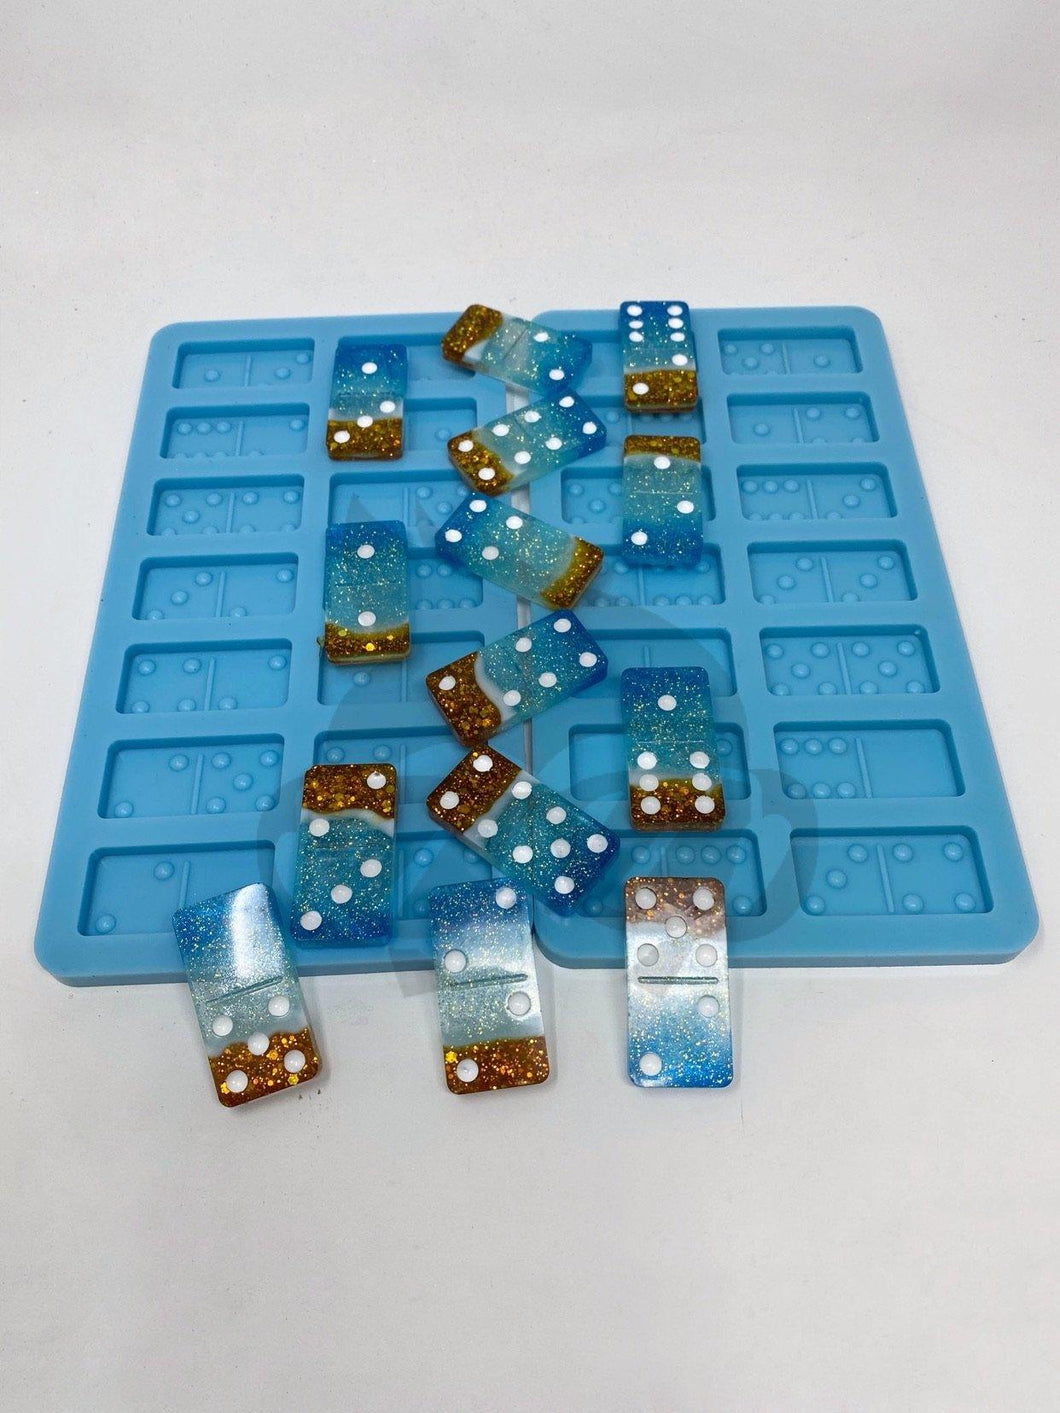 Domino Silicone Mold Set (2 Molds)